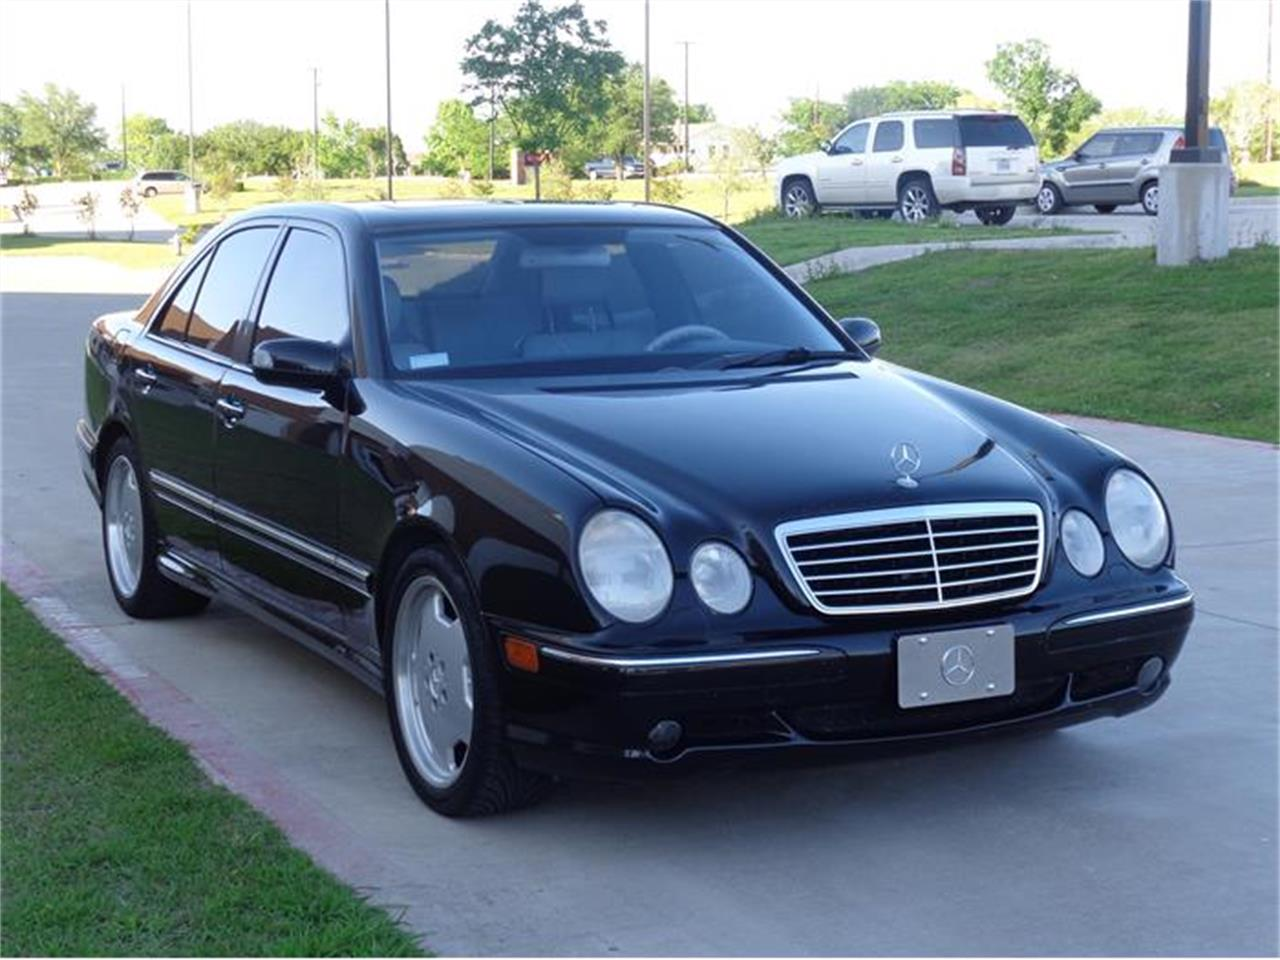 Large Picture of '01 Mercedes-Benz E55 located in Texas - $12,200.00 - HUJ9